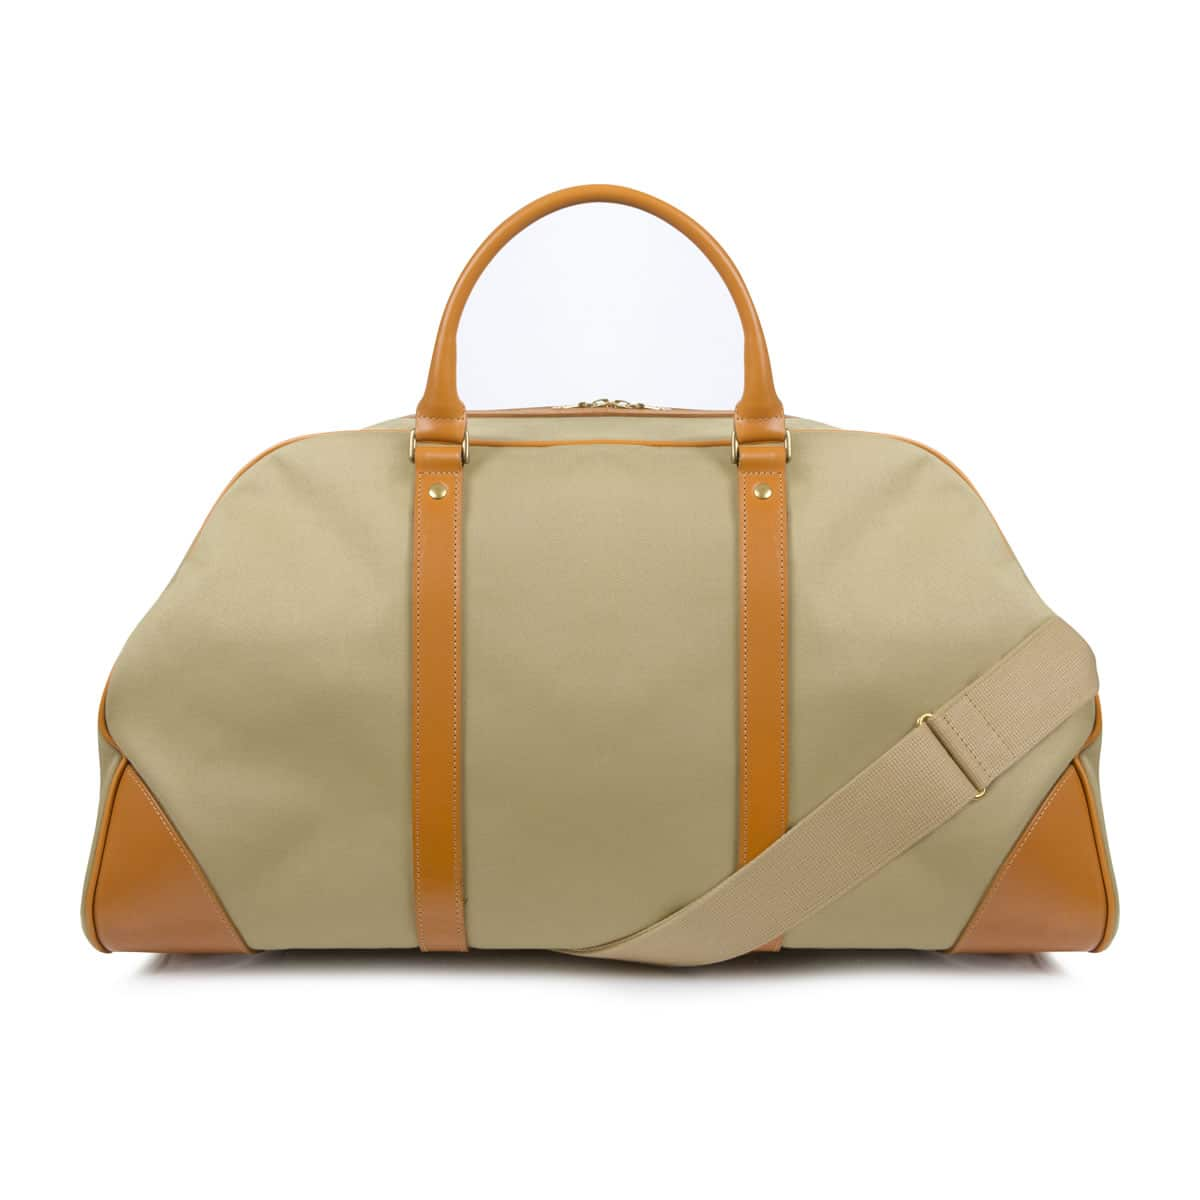 holdall for travel essentials